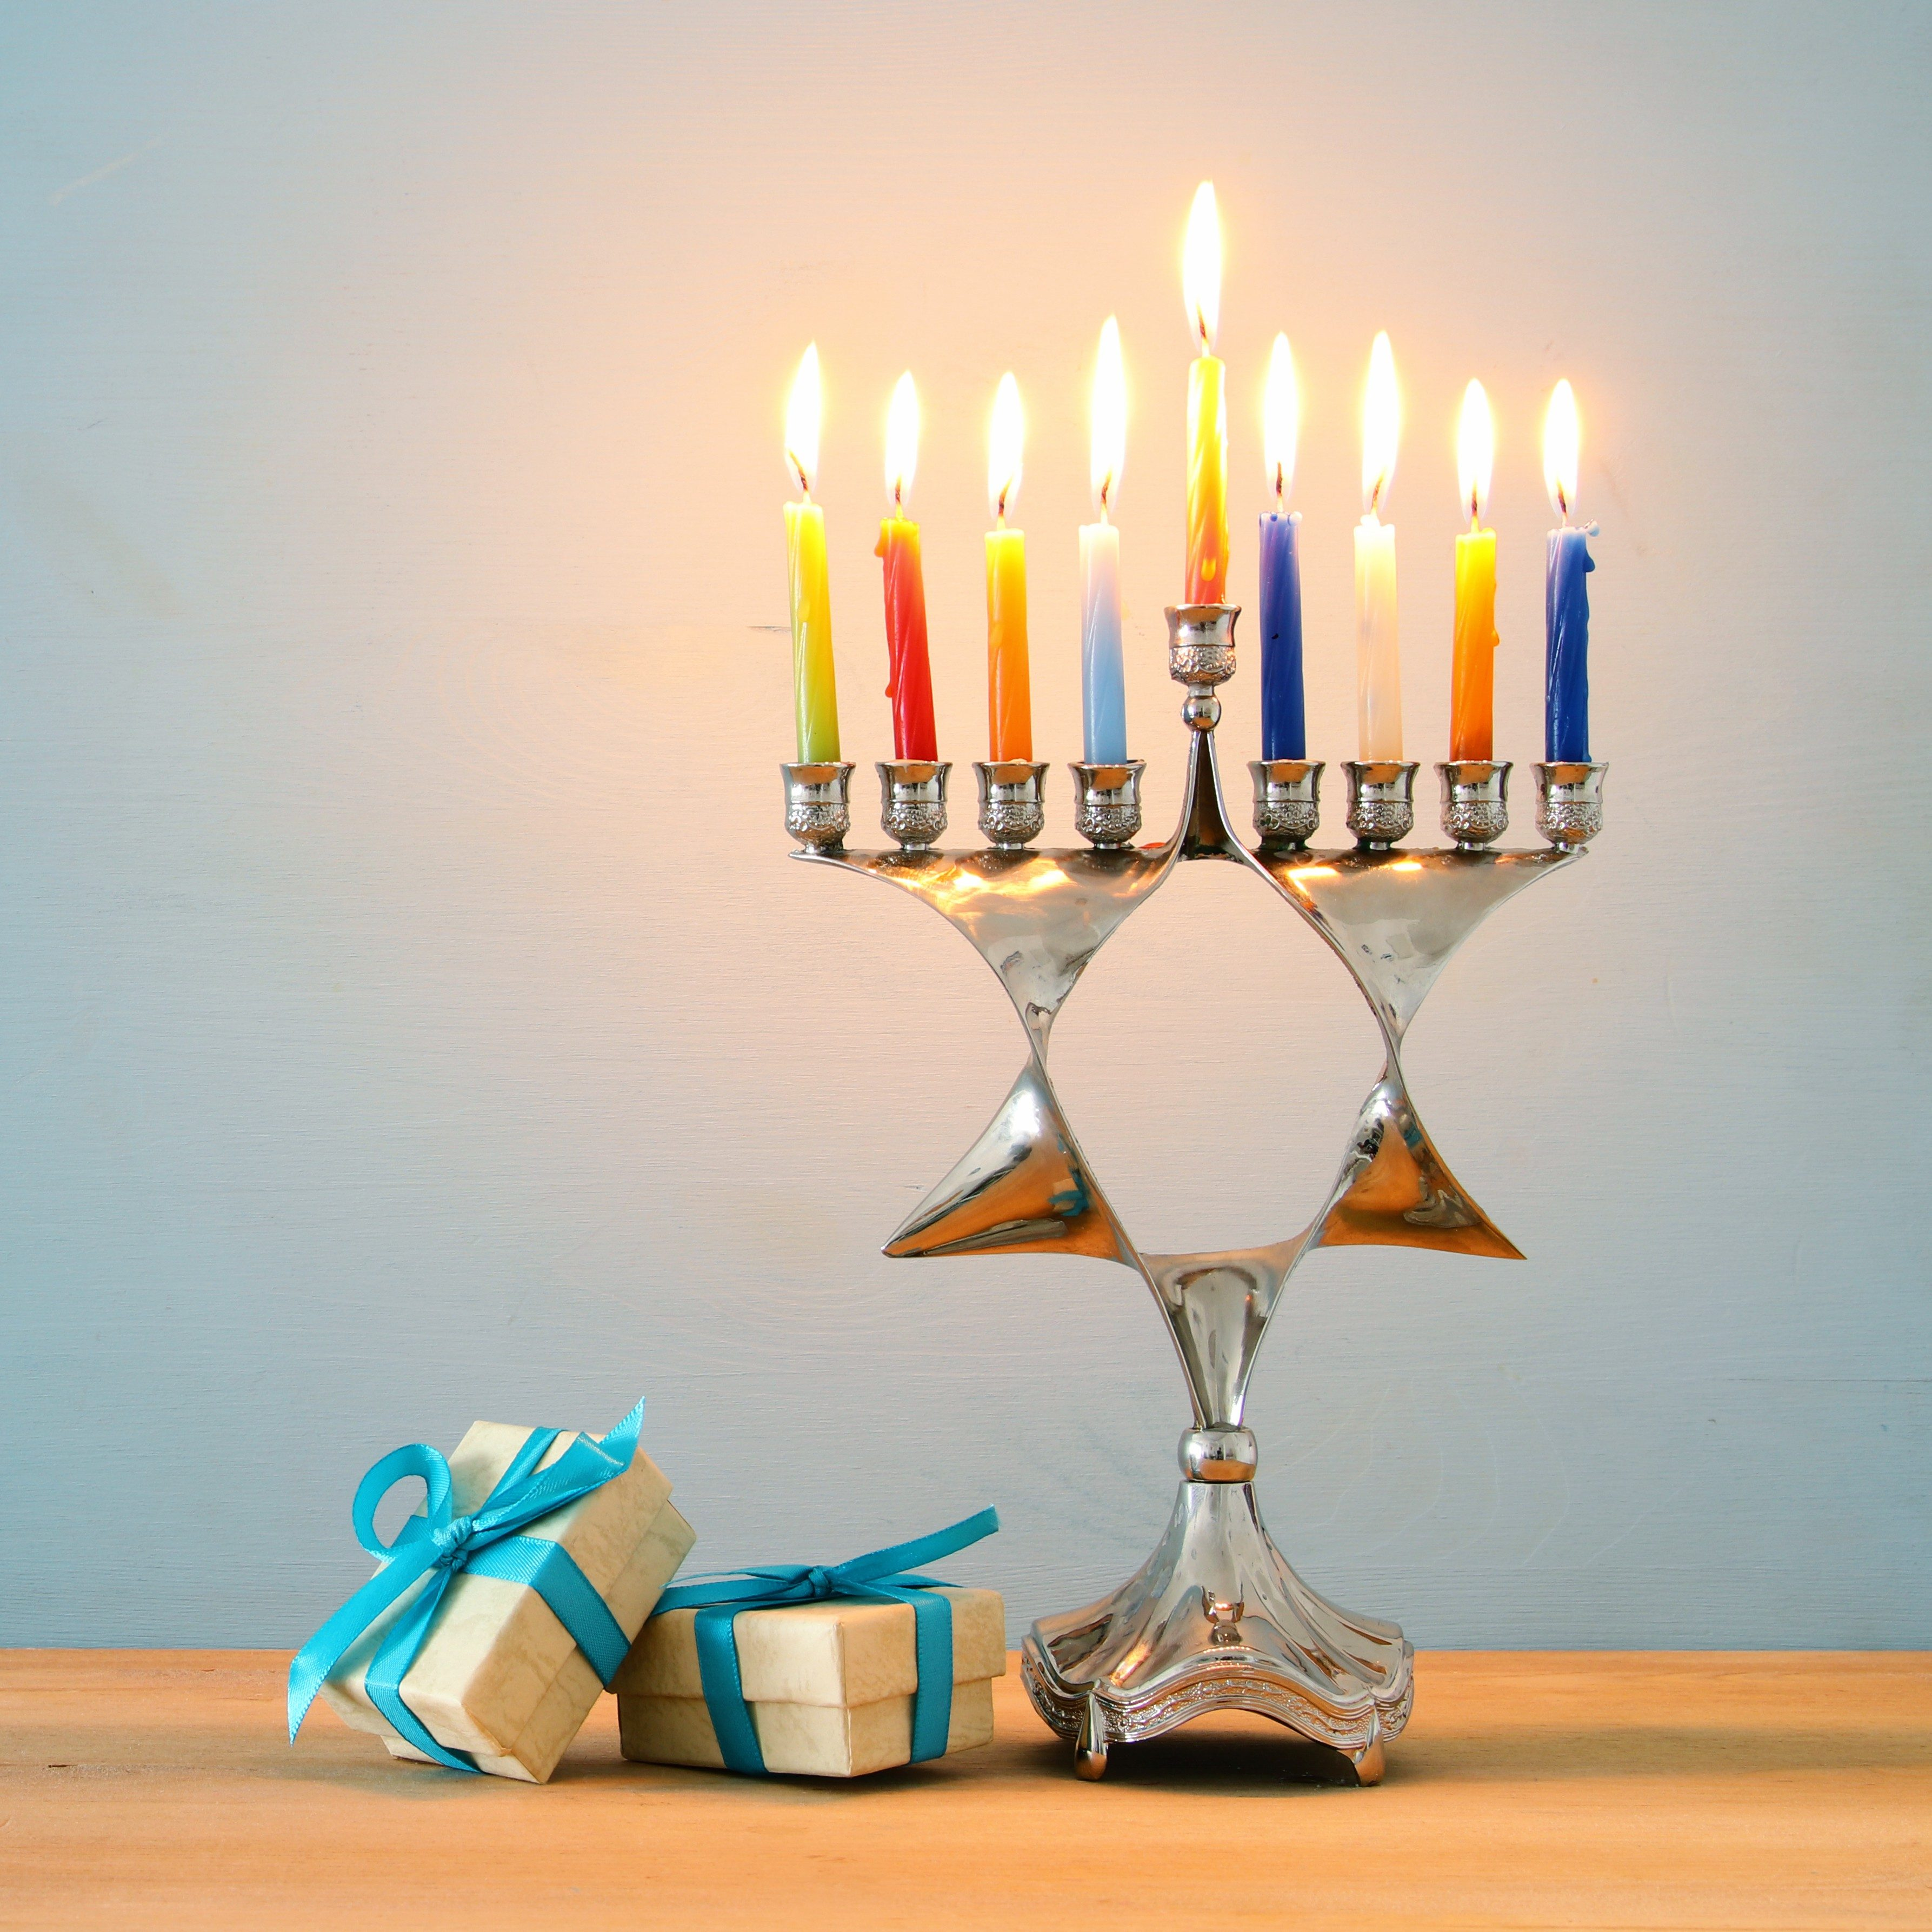 image of jewish holiday Hanukkah background with traditional menorah (traditional candelabra) and burning candles